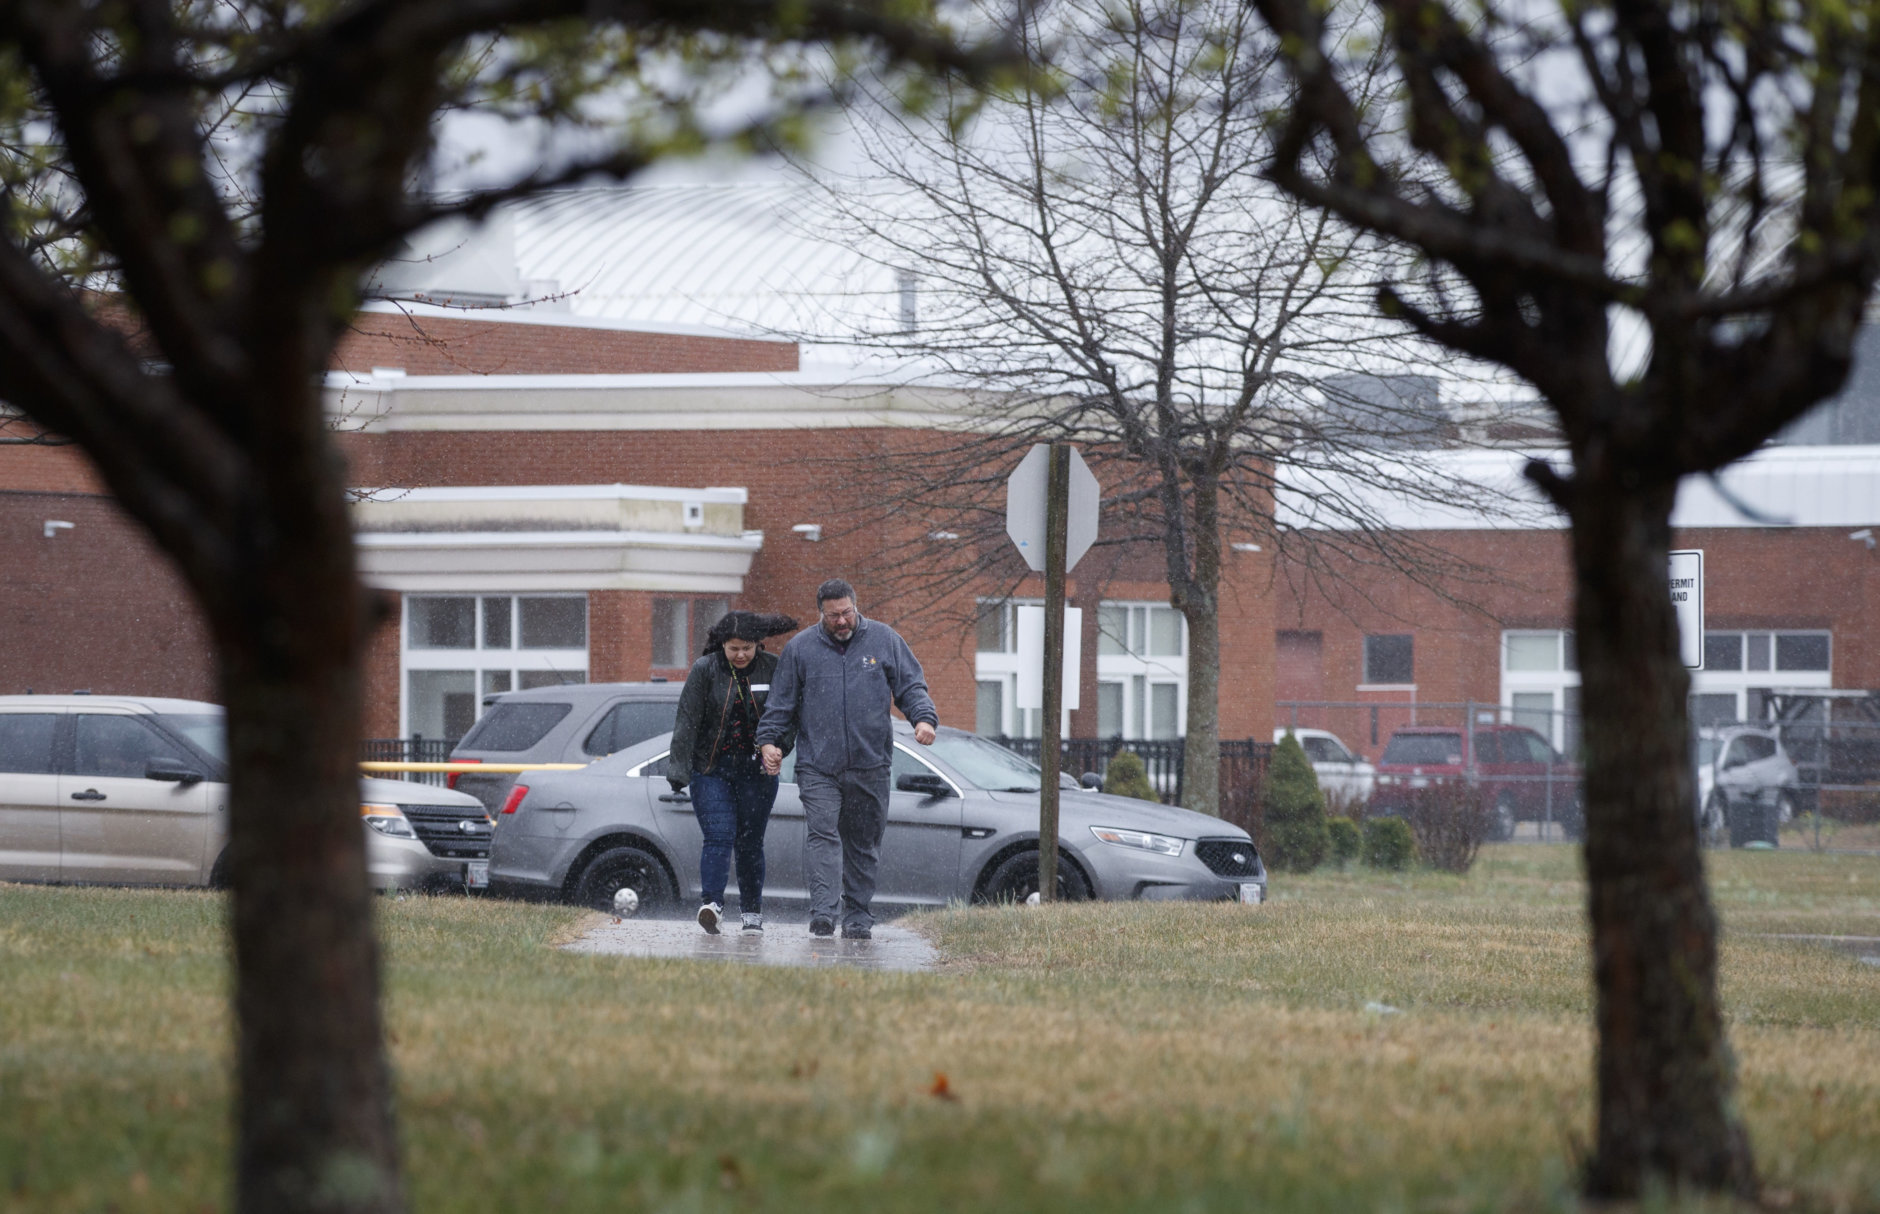 Parents walk with their children, students from Great Mills High School, as they pick them up from Leonardtown High School in Leonardtown, Md., Tuesday, March 20, 2018.   A teenager wounded a girl and a boy inside his Maryland high school Tuesday before a school resource officer was able to intervene, and each of them fired one more round as the shooter was fatally wounded, a sheriff said. St. Mary's County Sheriff Tim Cameron said the student with the handgun was declared dead at a hospital, and the other two students were in critical condition. (AP Photo/Carolyn Kaster)